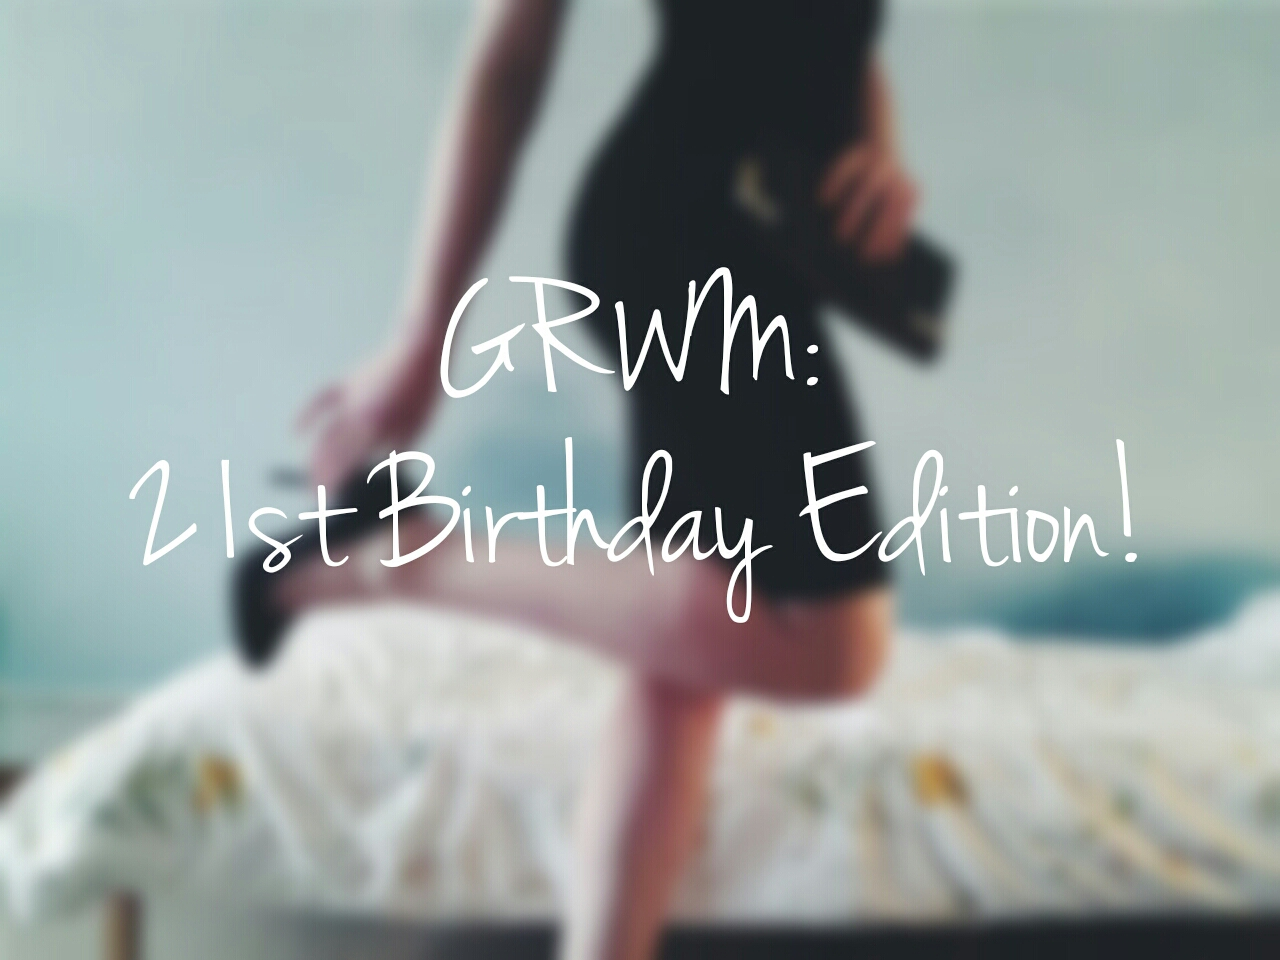 Grwm 21st Birthday Edition The Lady Life Blog No matter what background your photo currently has just pick your original image and the background of your choice and get the result just seconds later. the lady life blog